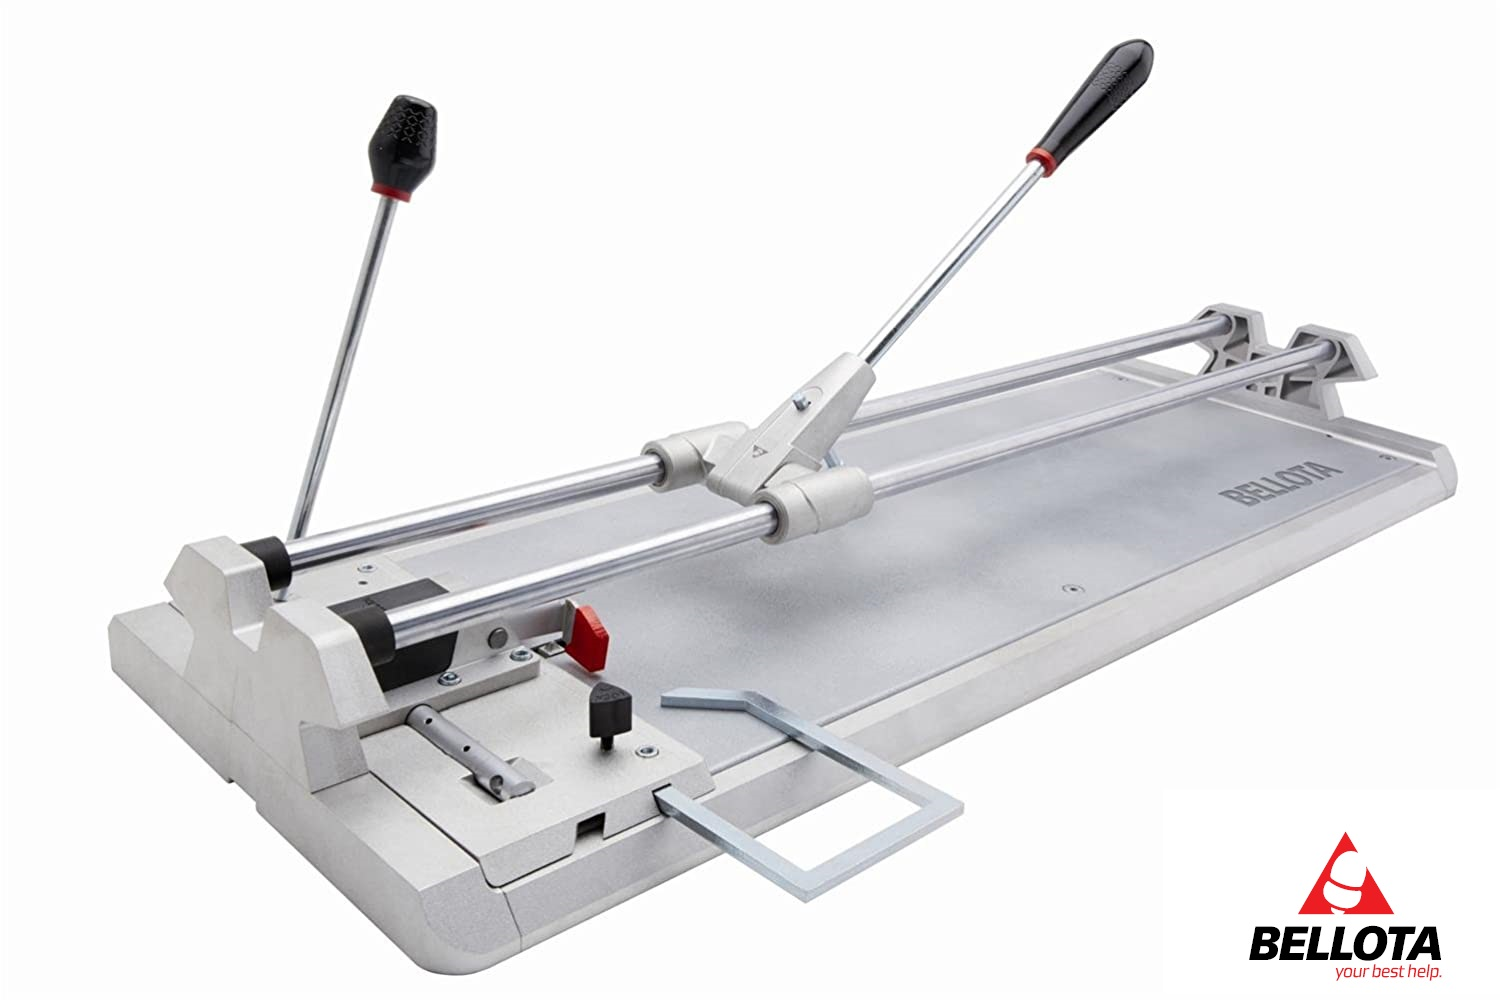 Bellota Ceramic Tile Cutter Manual